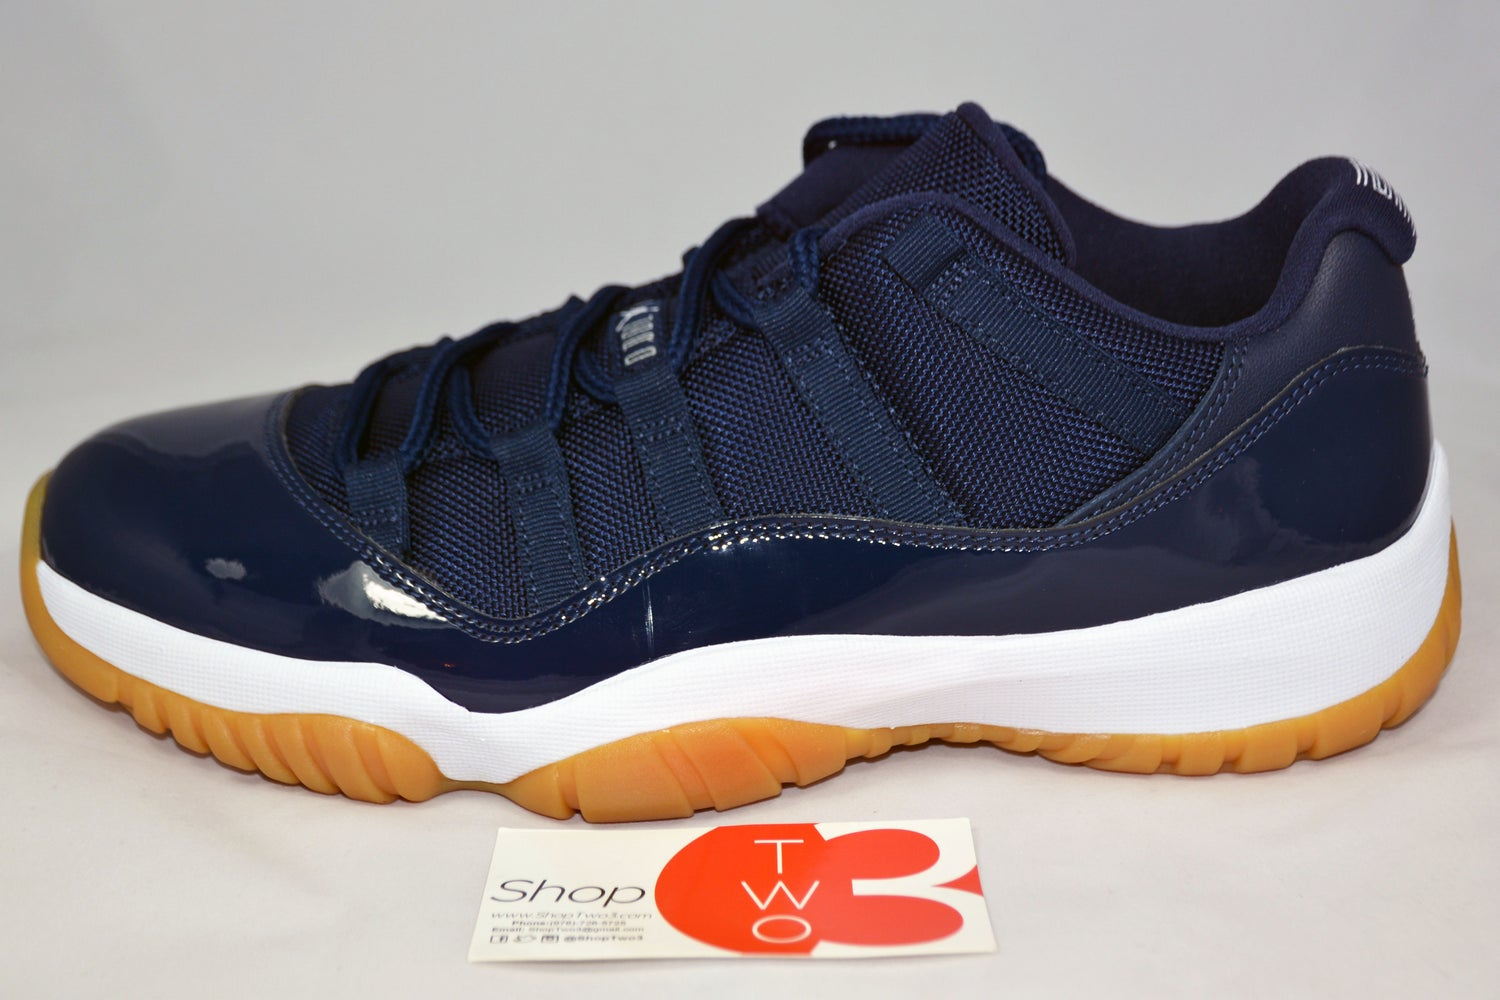 8bde2f0ece5d Air Jordan Retro 11 Low